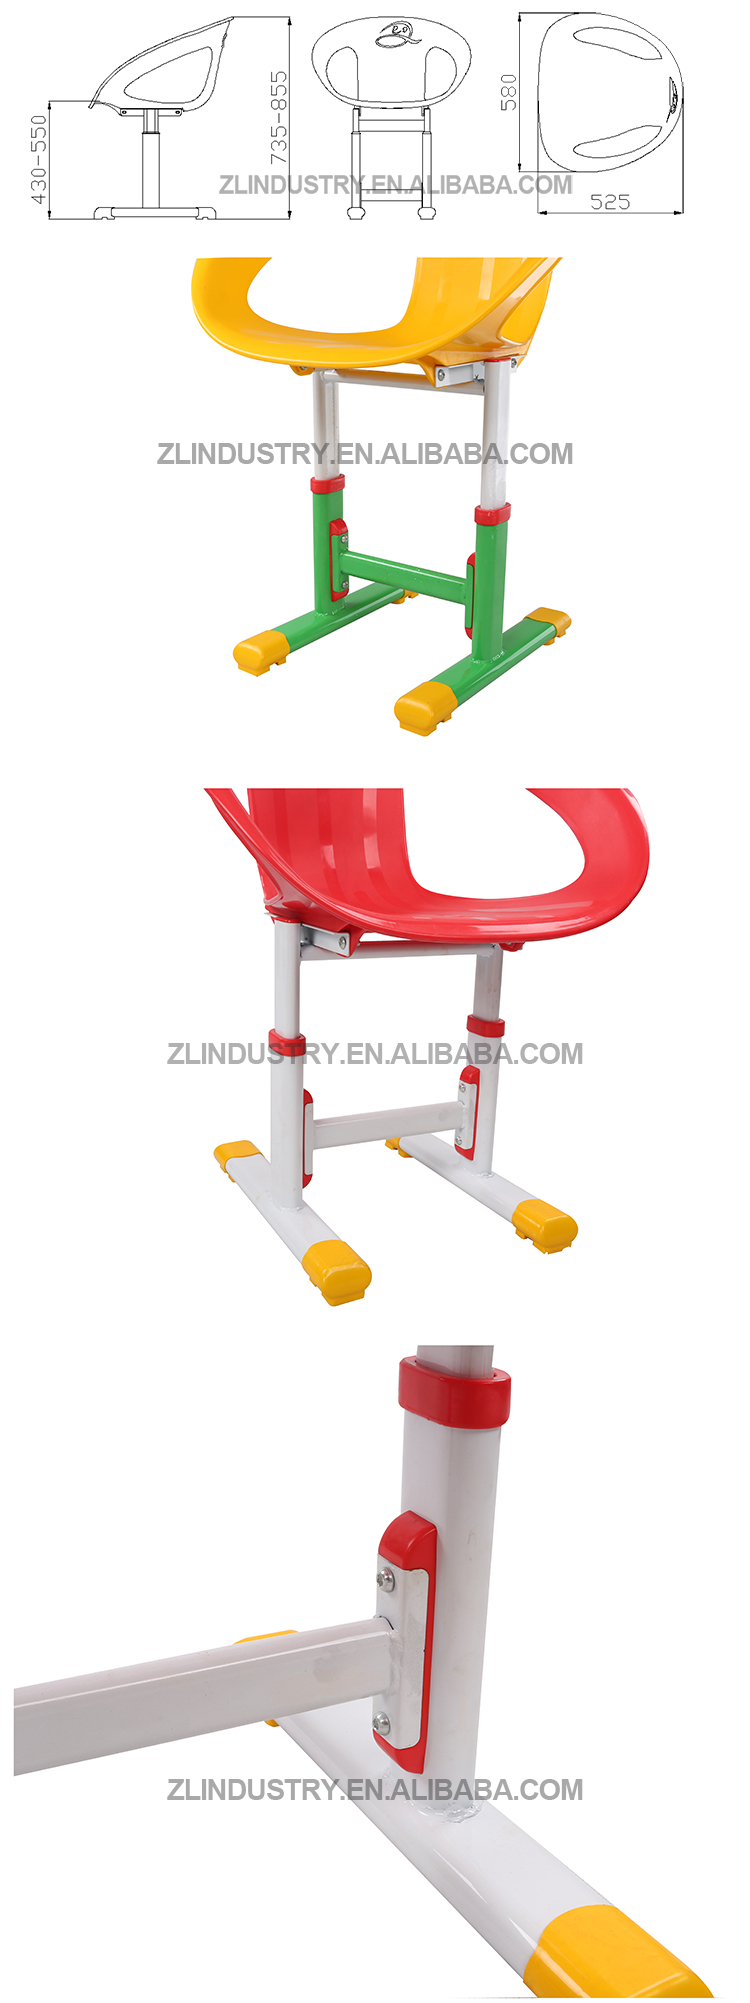 China made plastic seat steel outdoor chair with adjustable legs